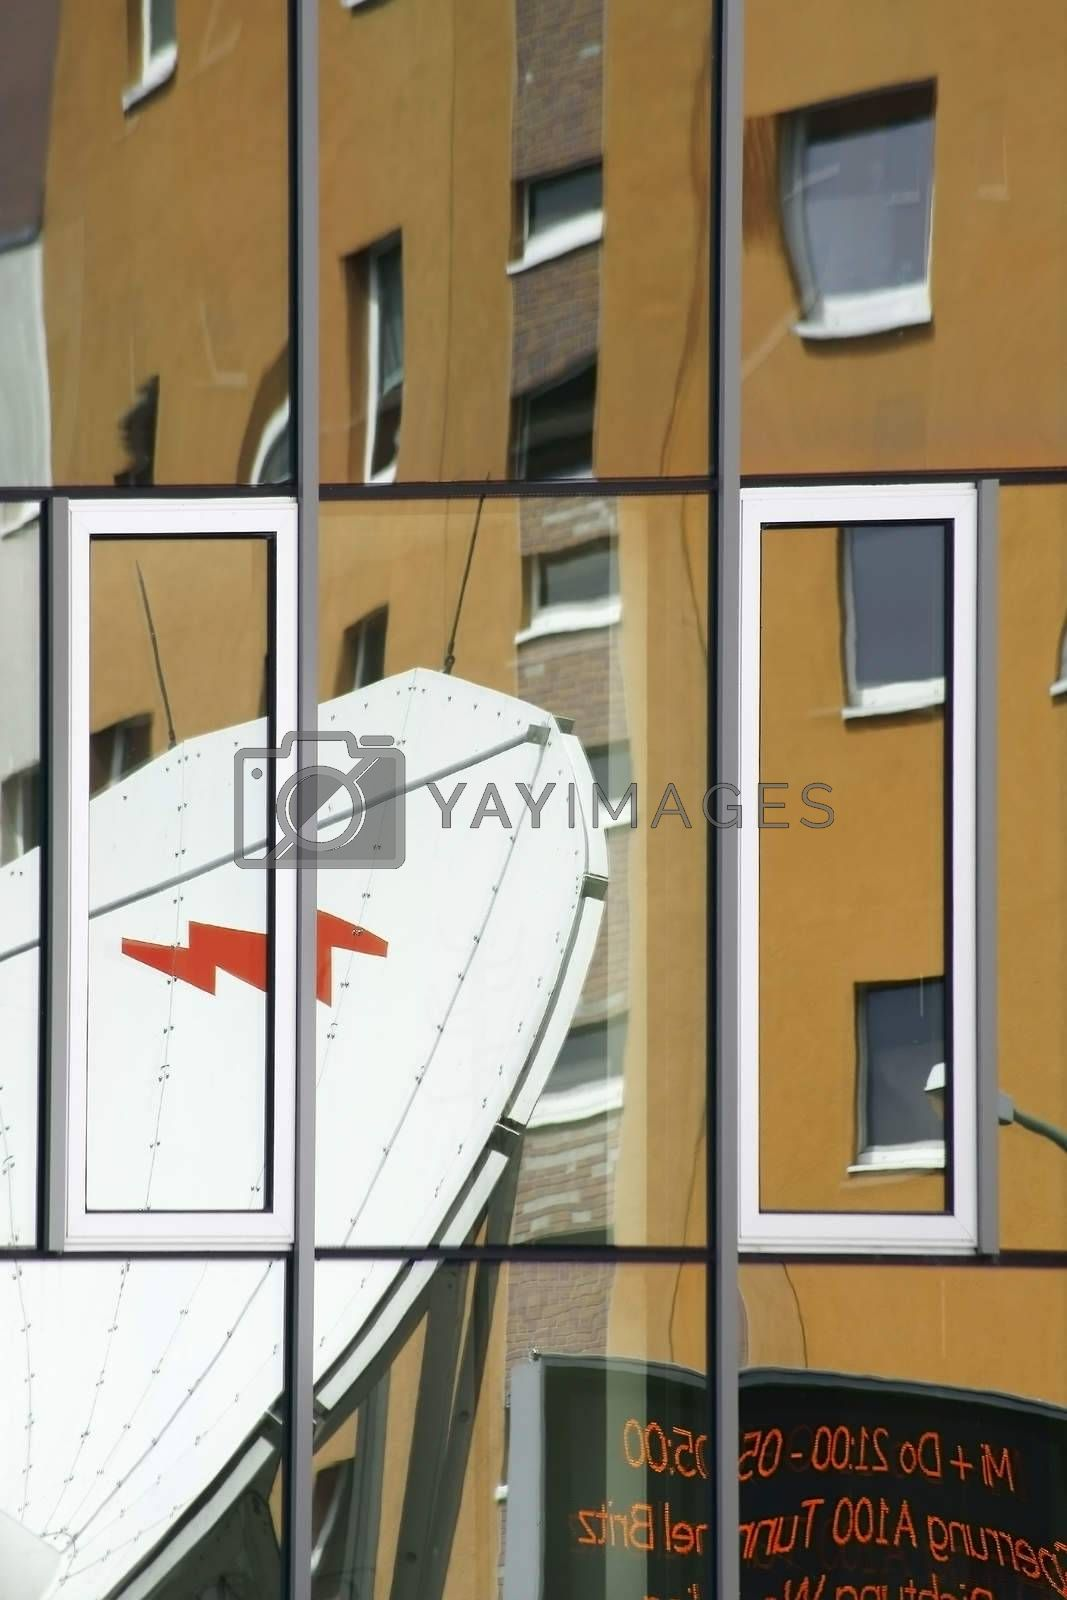 The abstract photograph of reflections in windows.